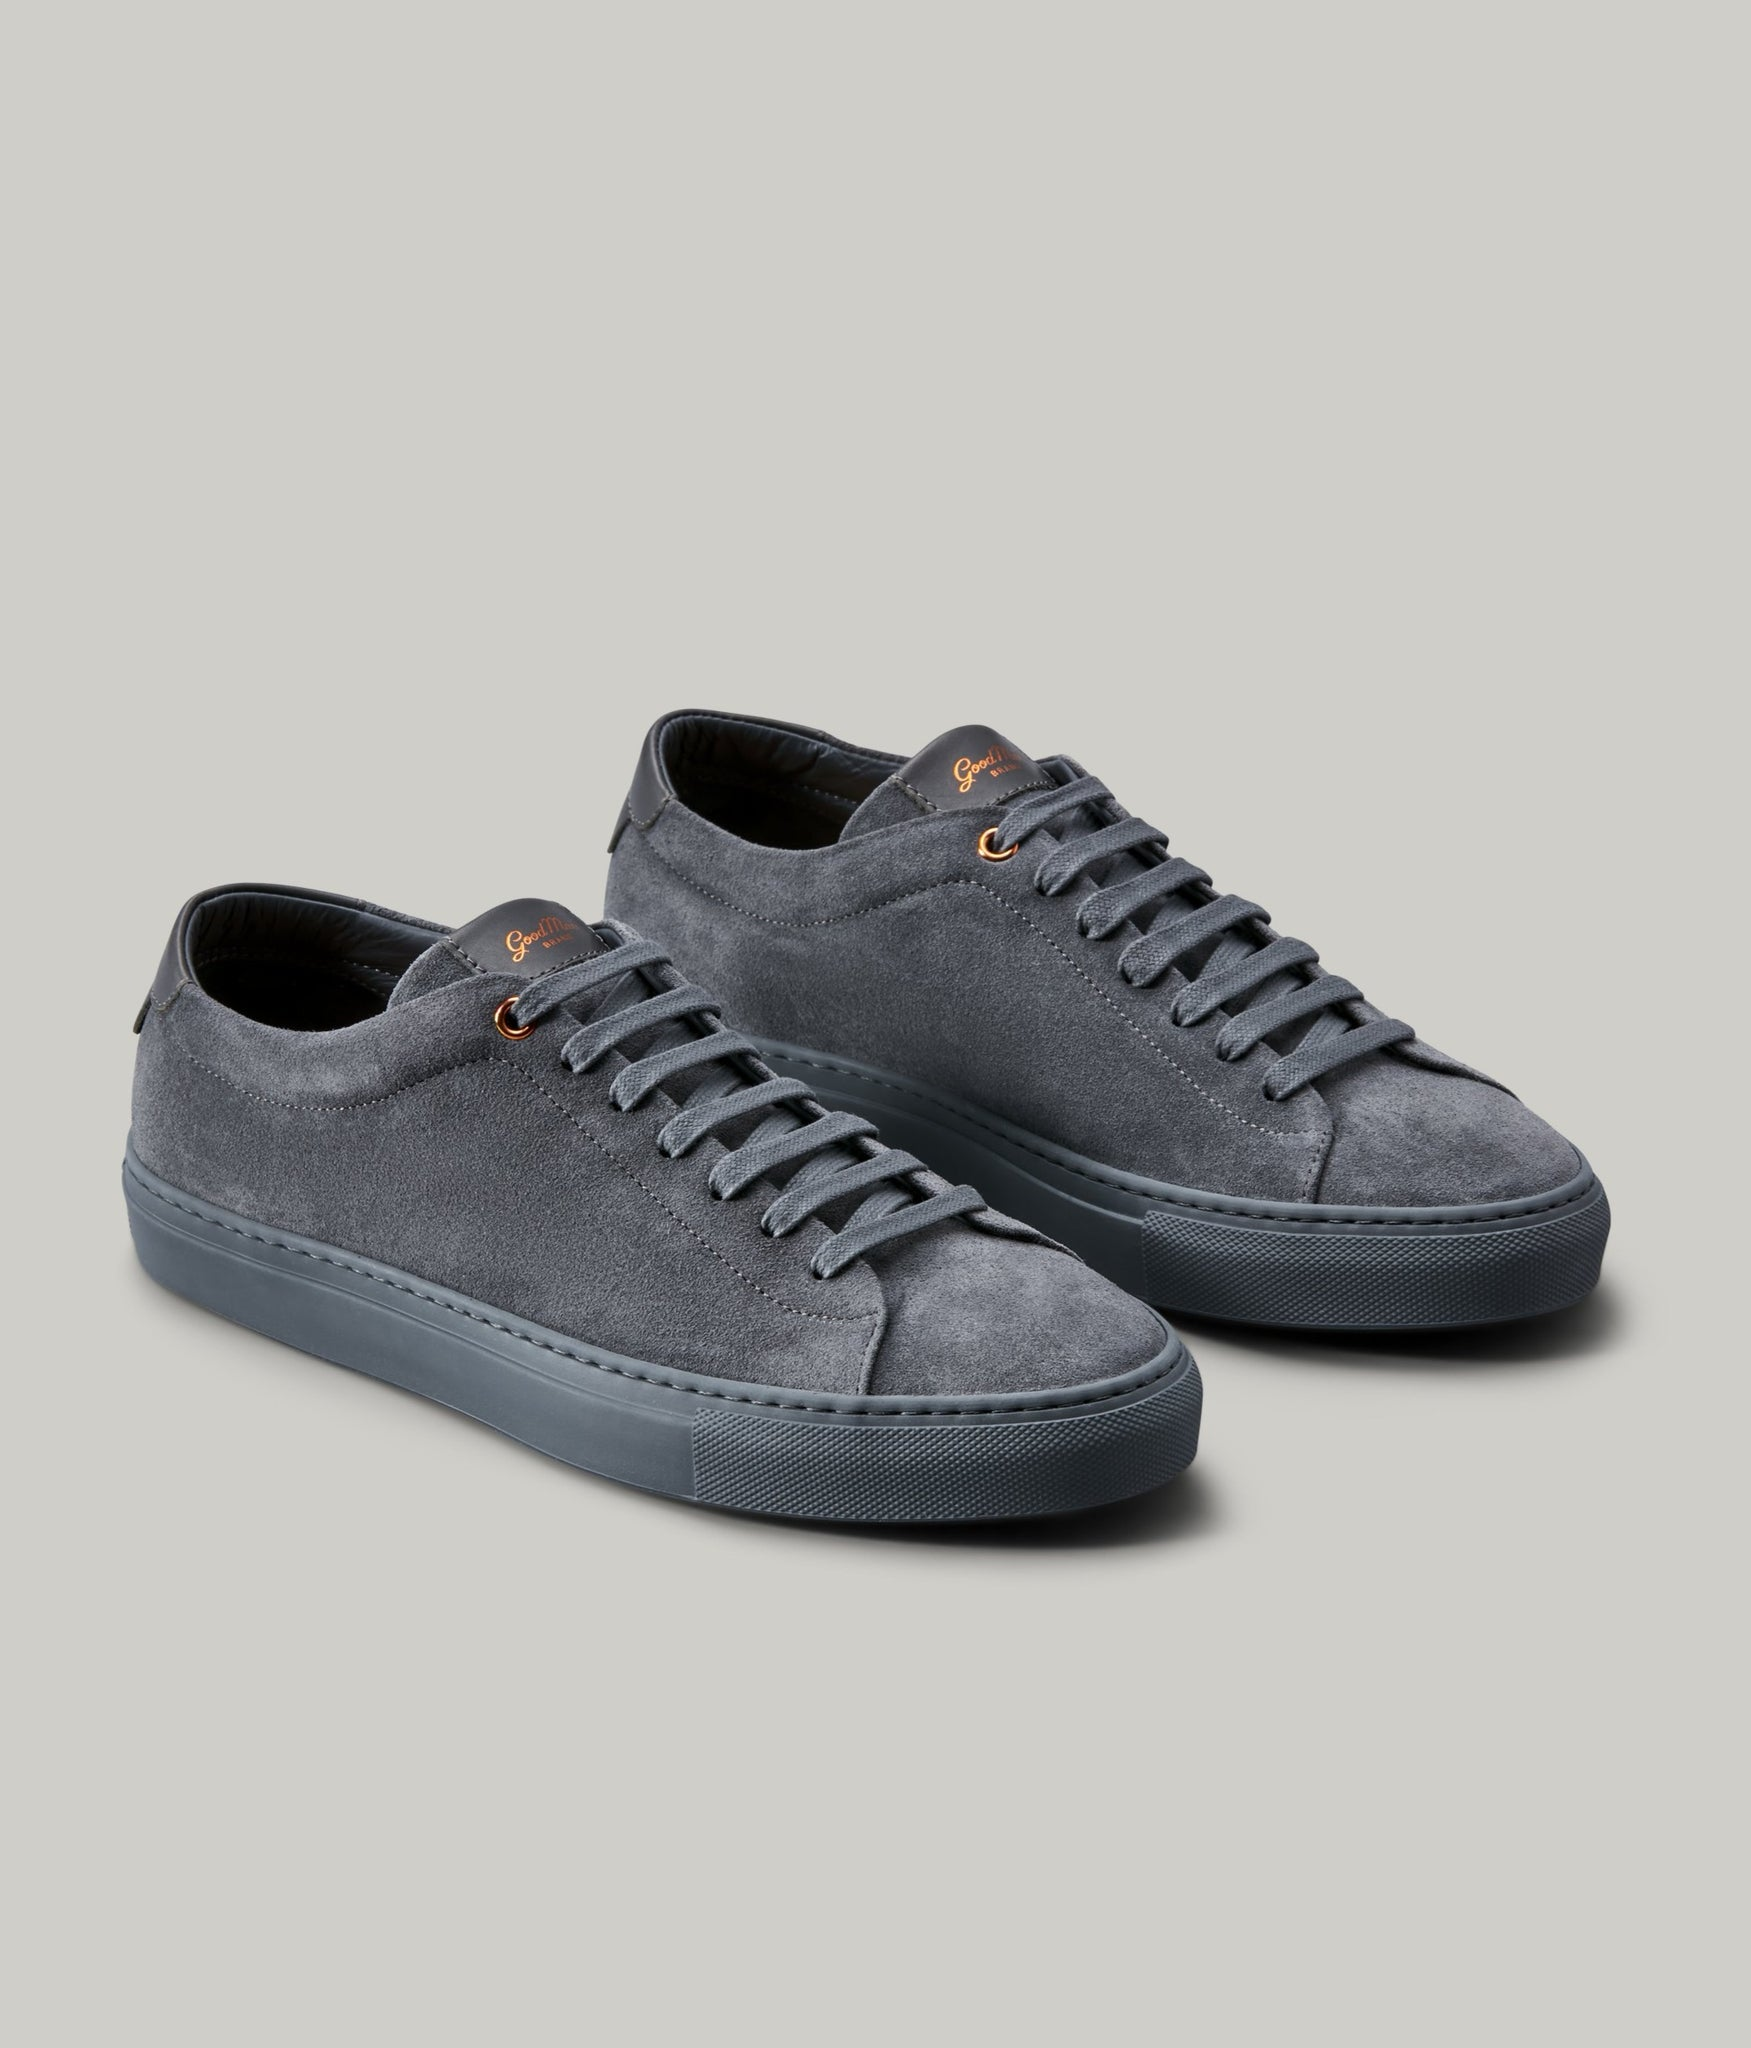 Edge Mono Lo-Top Sneaker in Suede - Charcoal